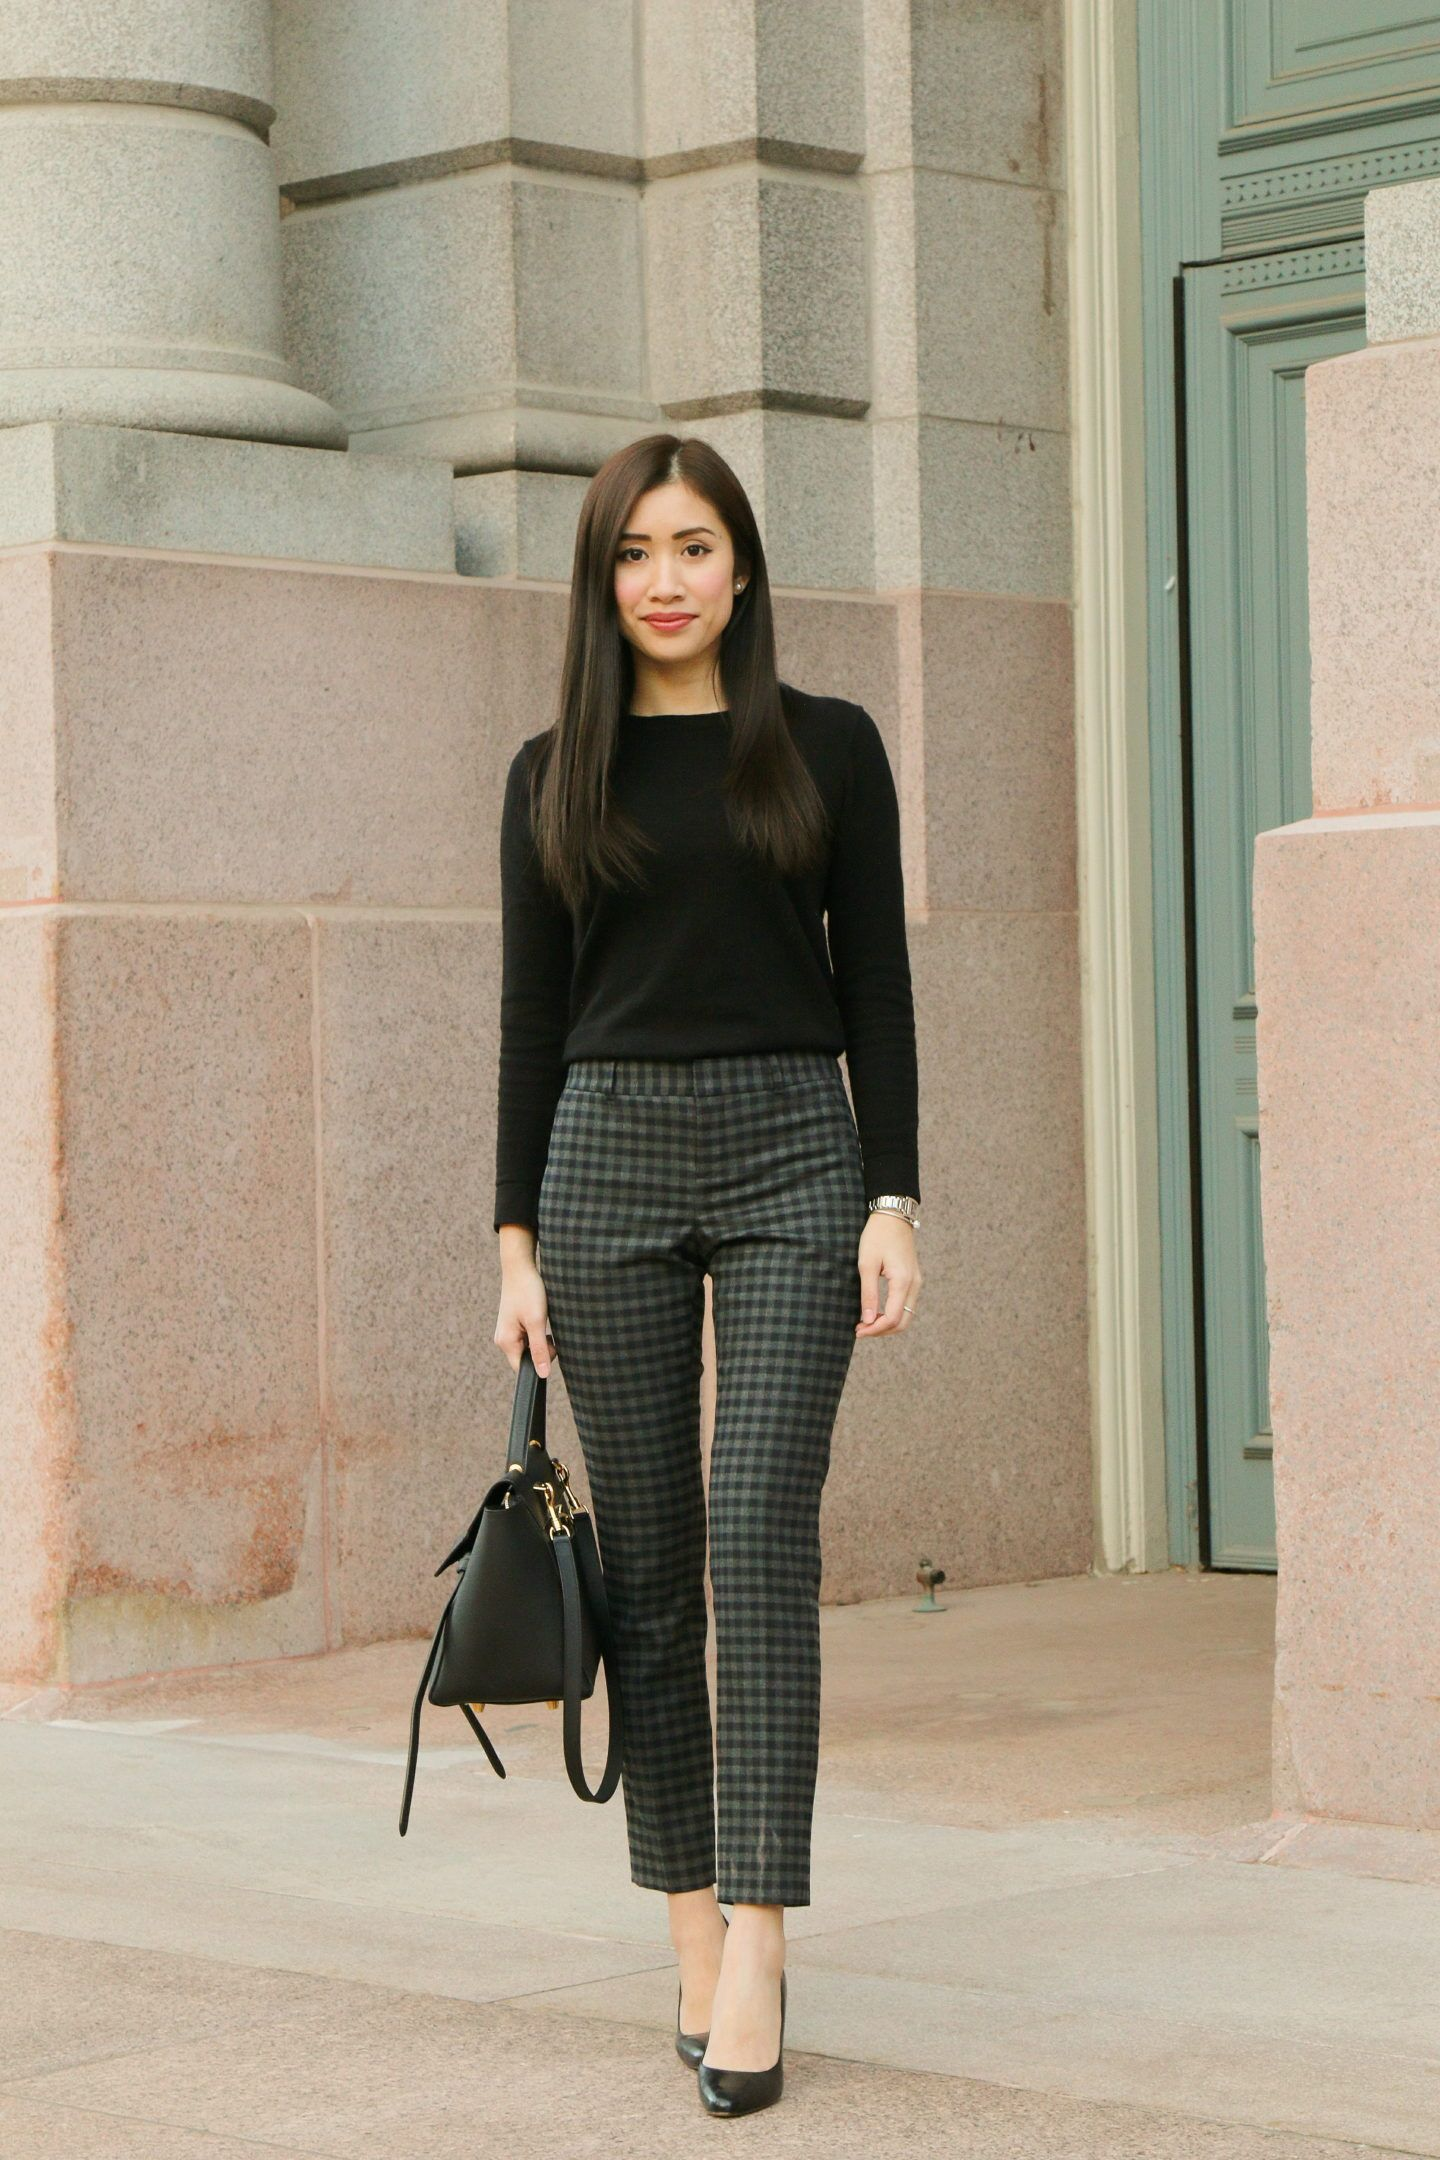 Professional work outfit on Kimlet.com | Casual work outfits